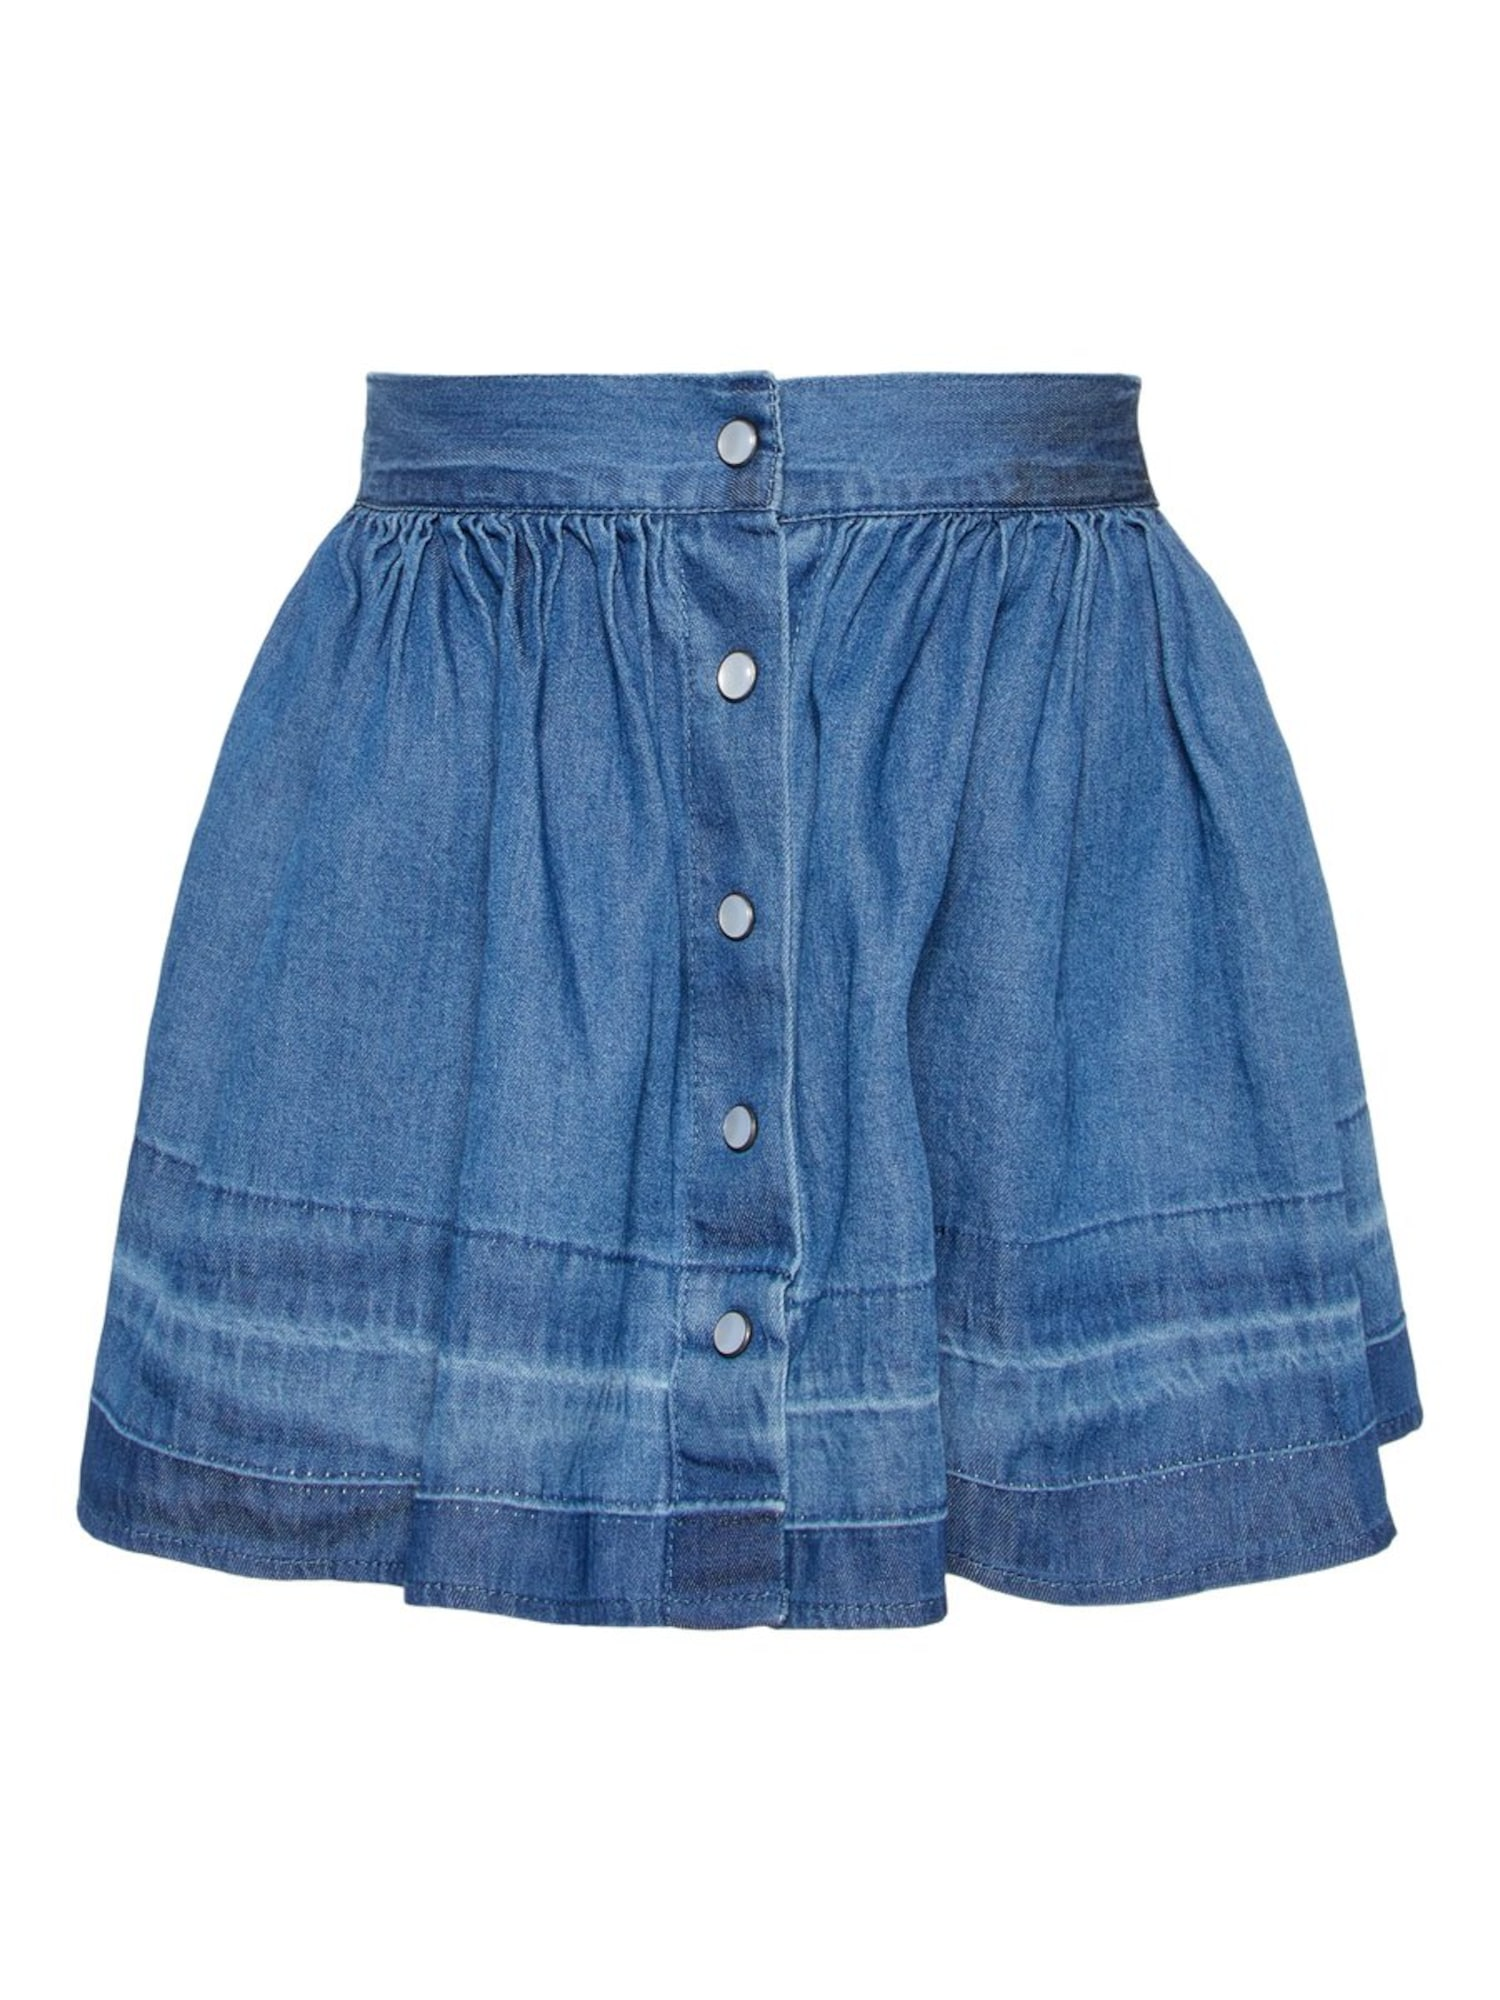 Name it Meisjes Rok 'NMFBRIELLE DNM 2170' blauw denim